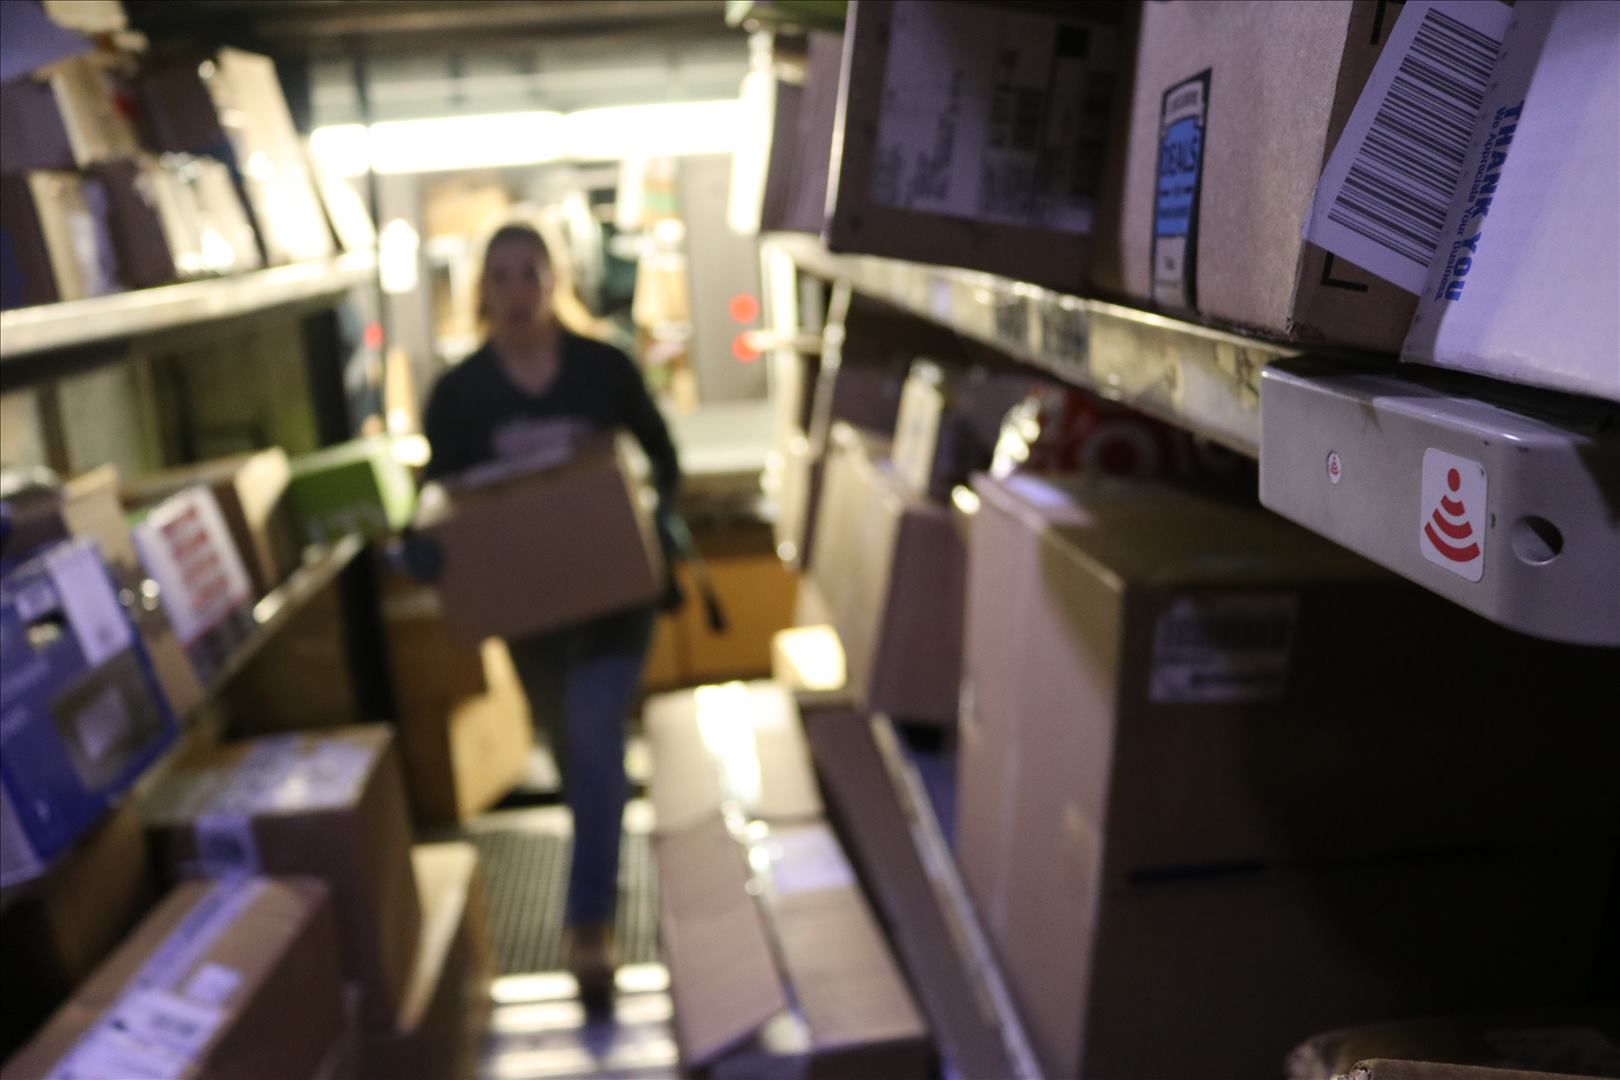 How Ups Delivers Faster Using 8 Headphones And Code That Decides